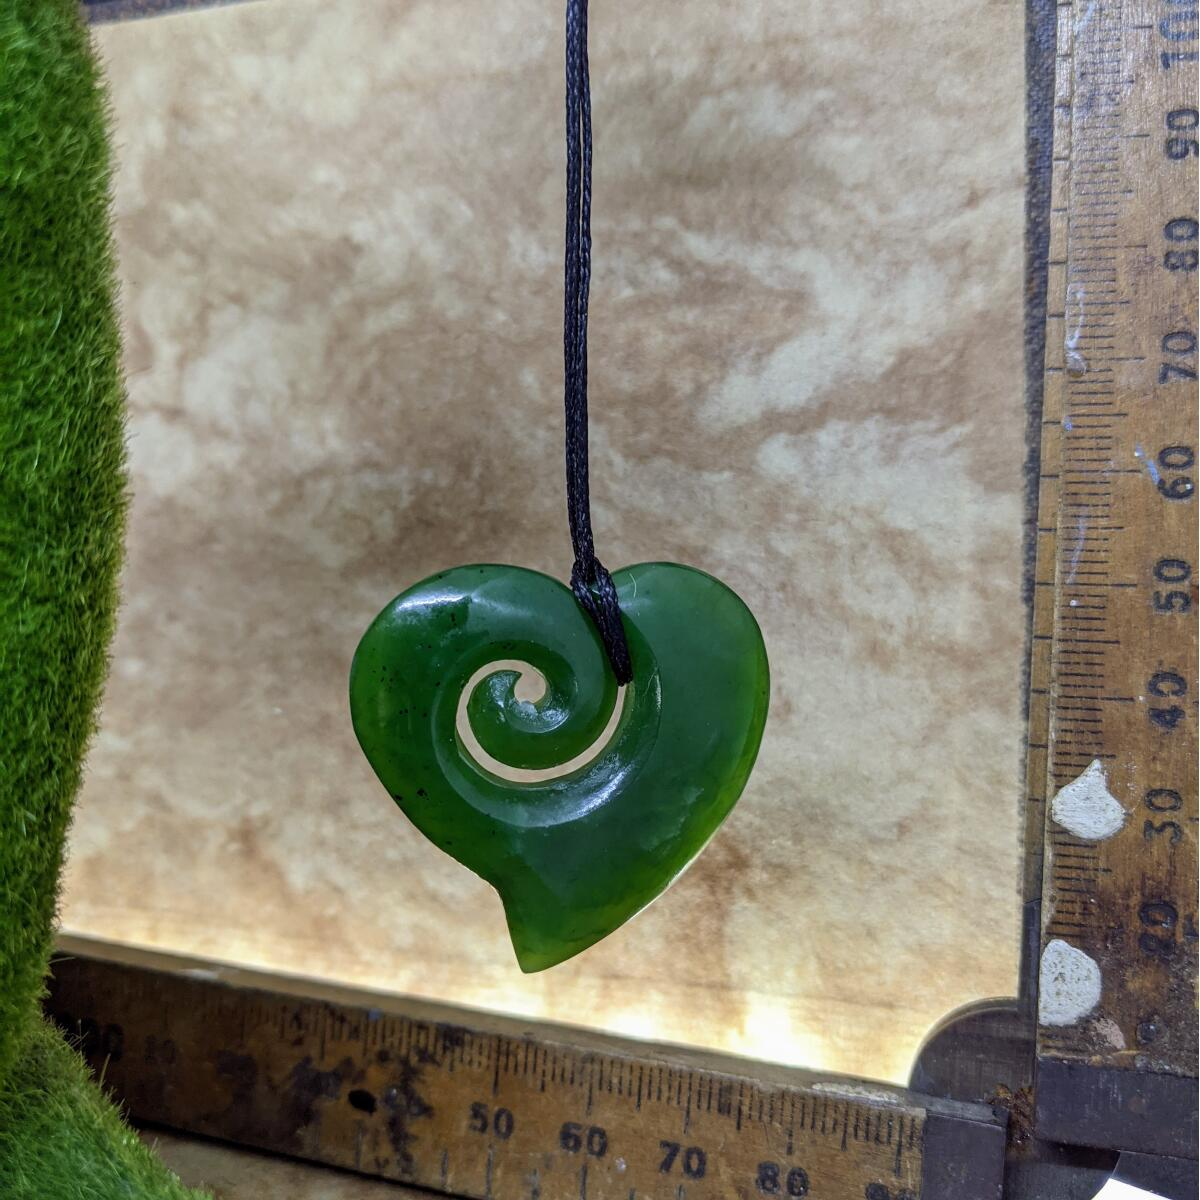 New Zealand Greenstone Heart Koru Necklace 35mm.